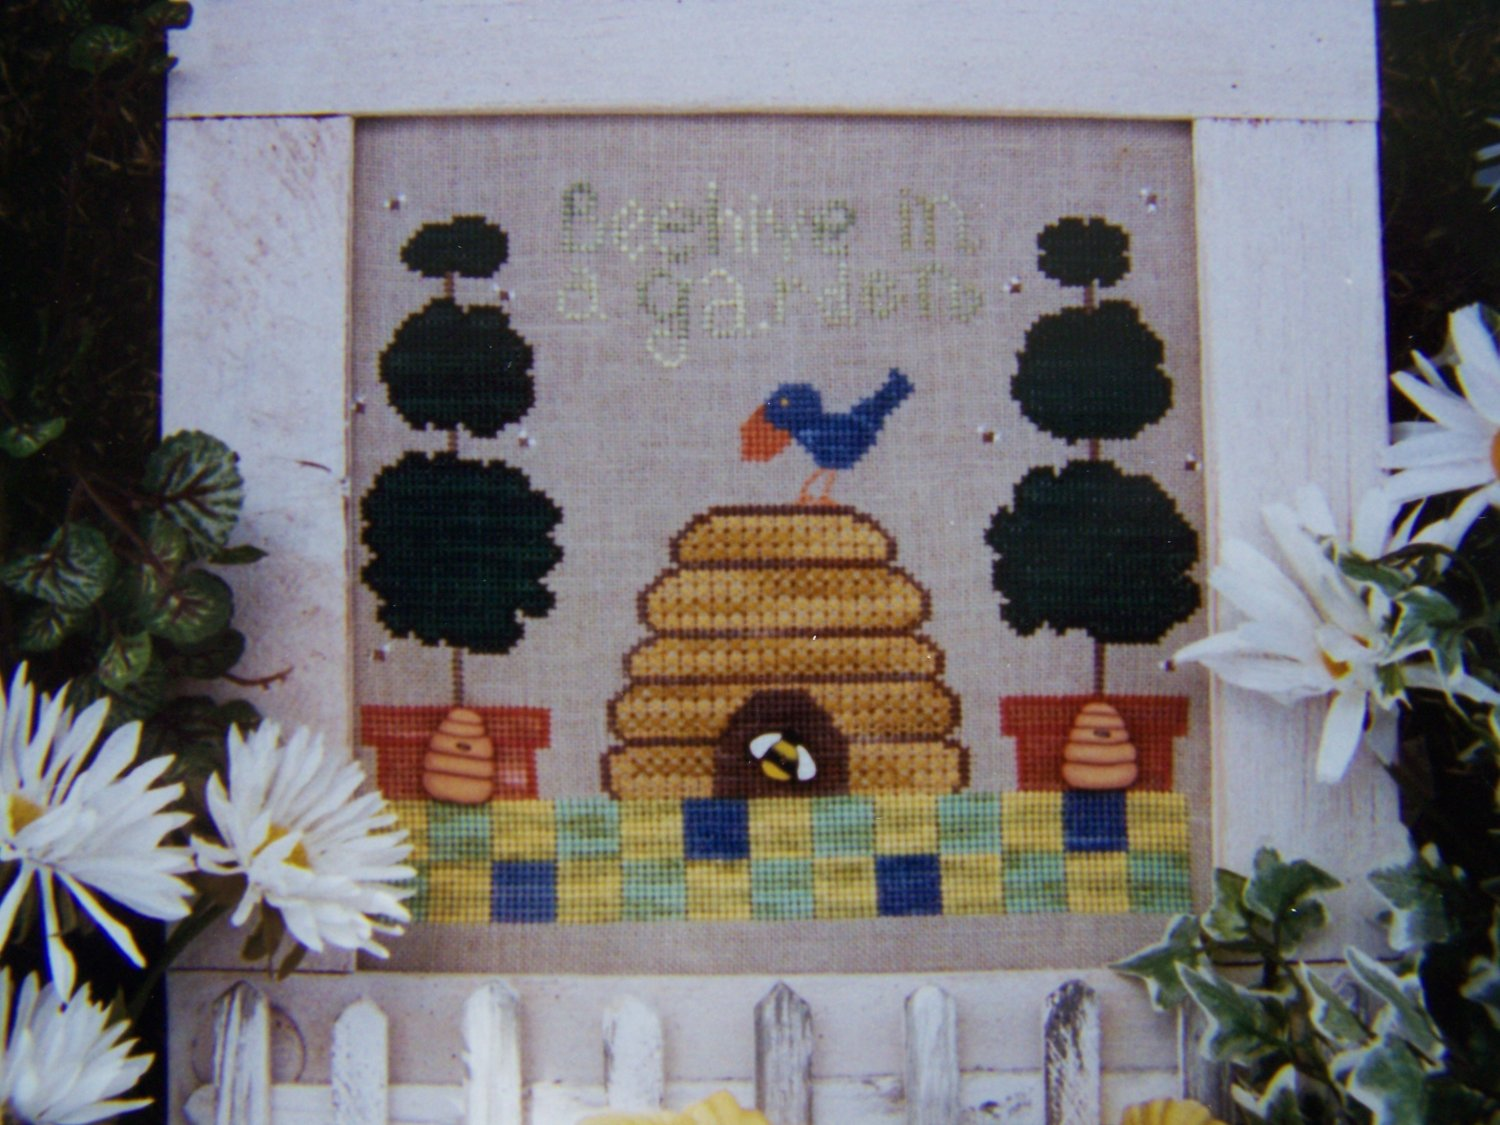 New Fanci That 148 Beehive in a Garden Pattern Cross Stitch Embroidery